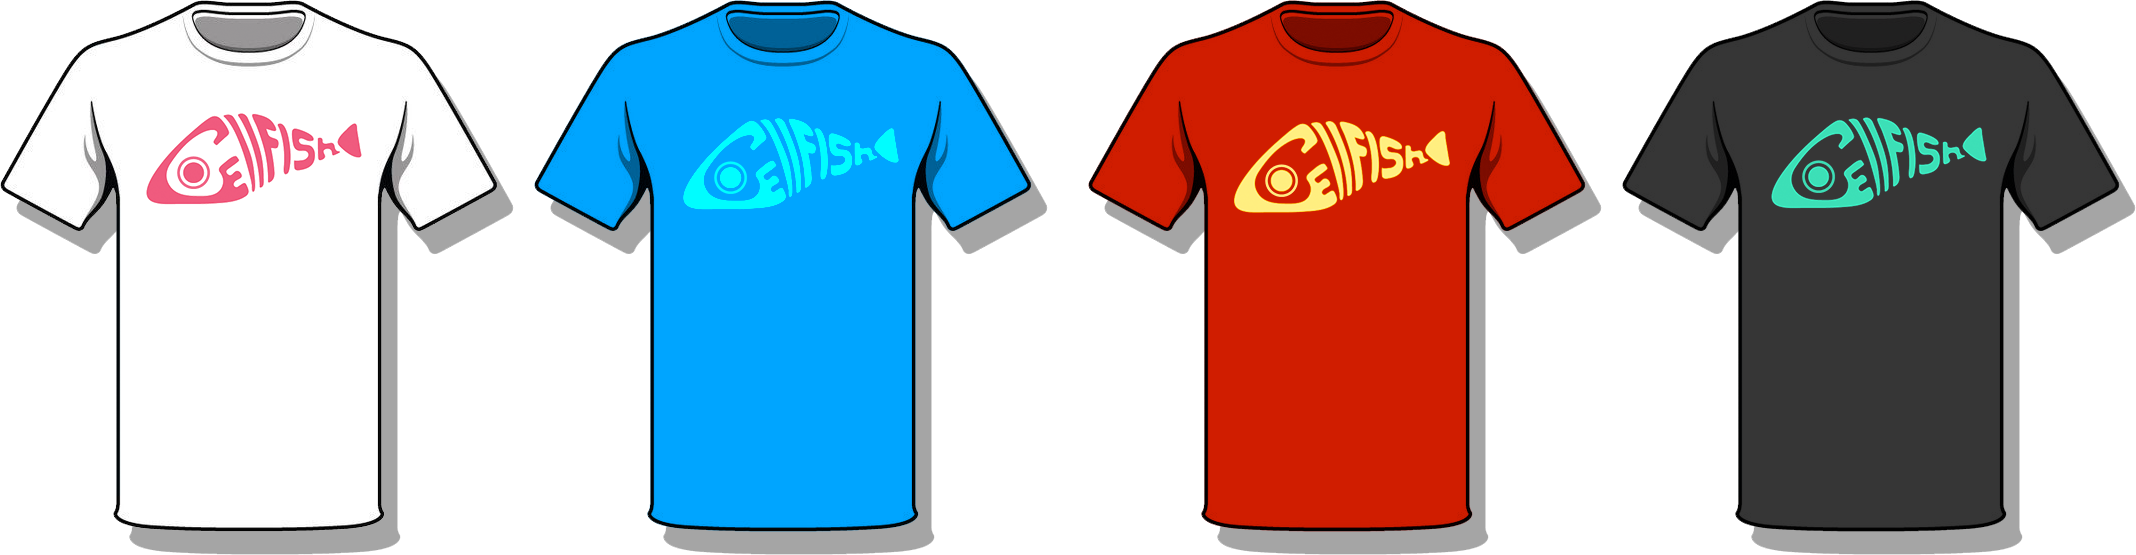 cell-fish-tees